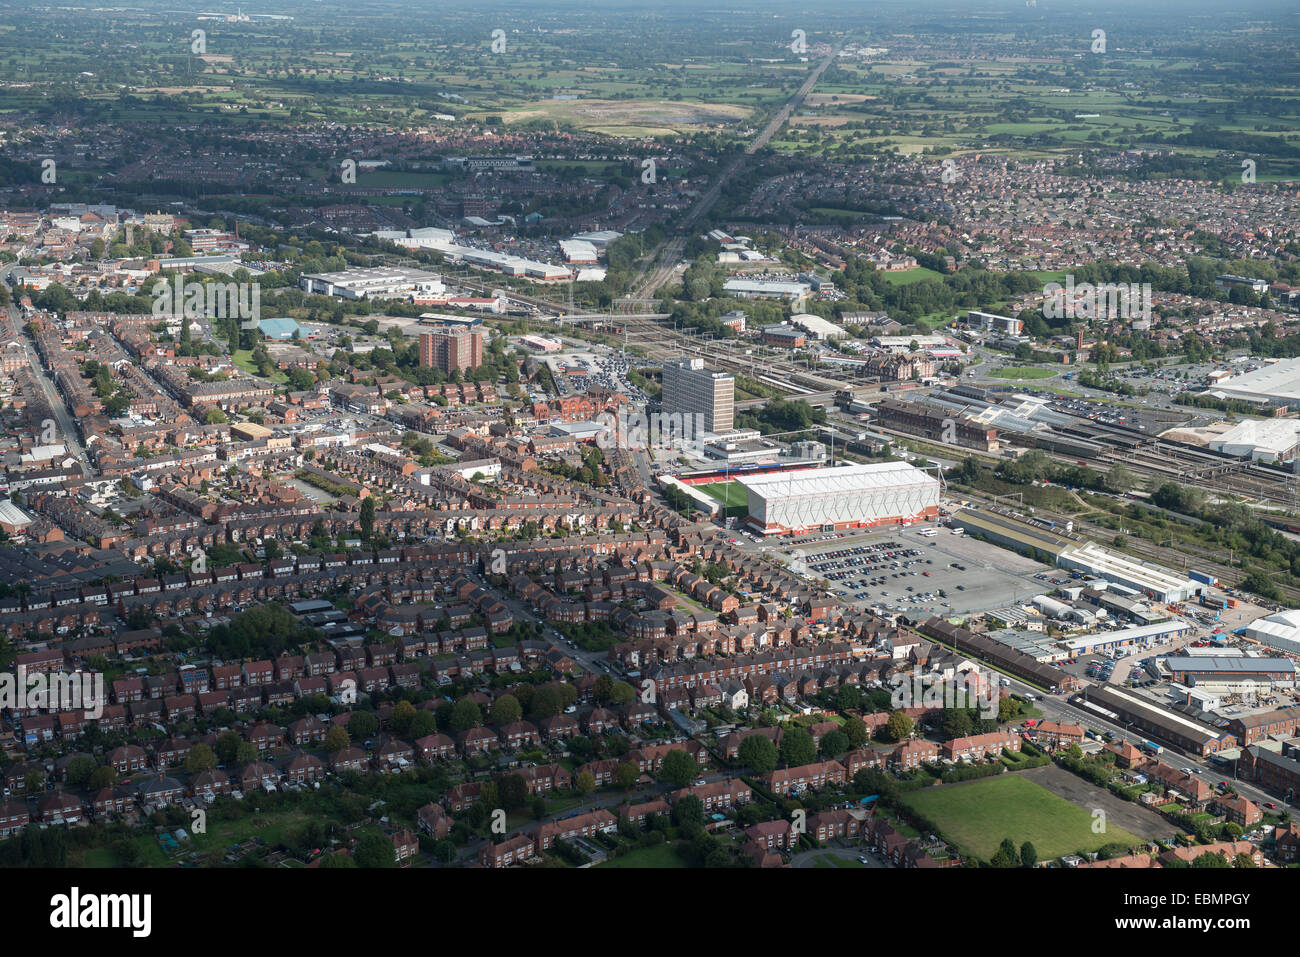 An aerial view of the Cheshire town of Crewe - Stock Image